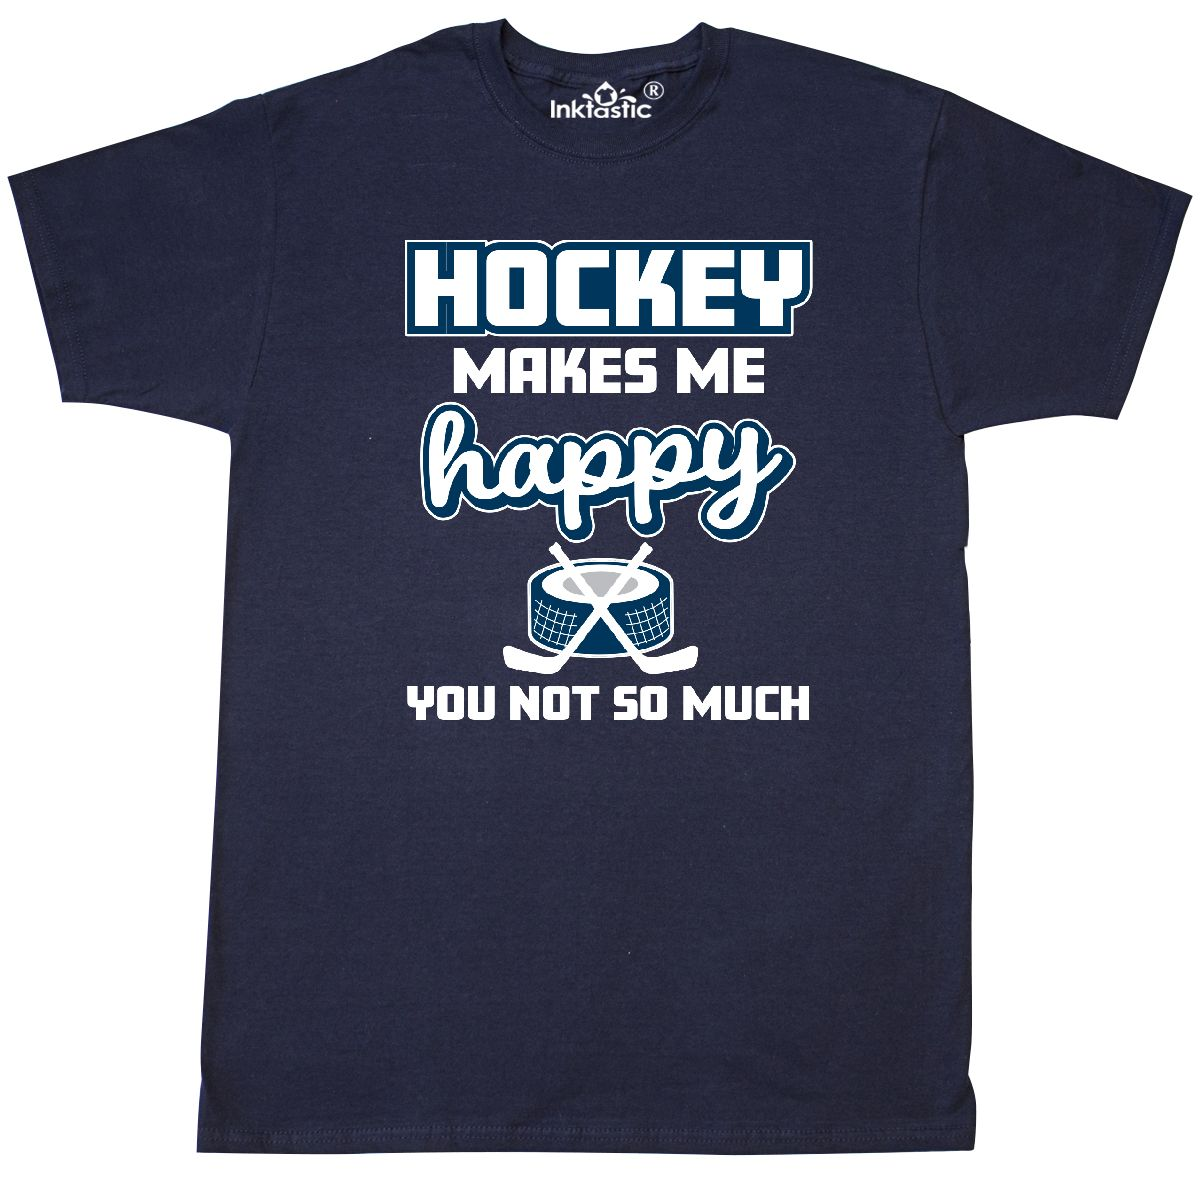 Inktastic Hockey Makes Me Happy You Not So Much T-Shirt Sports Sport Puck Sticks by Inktastic